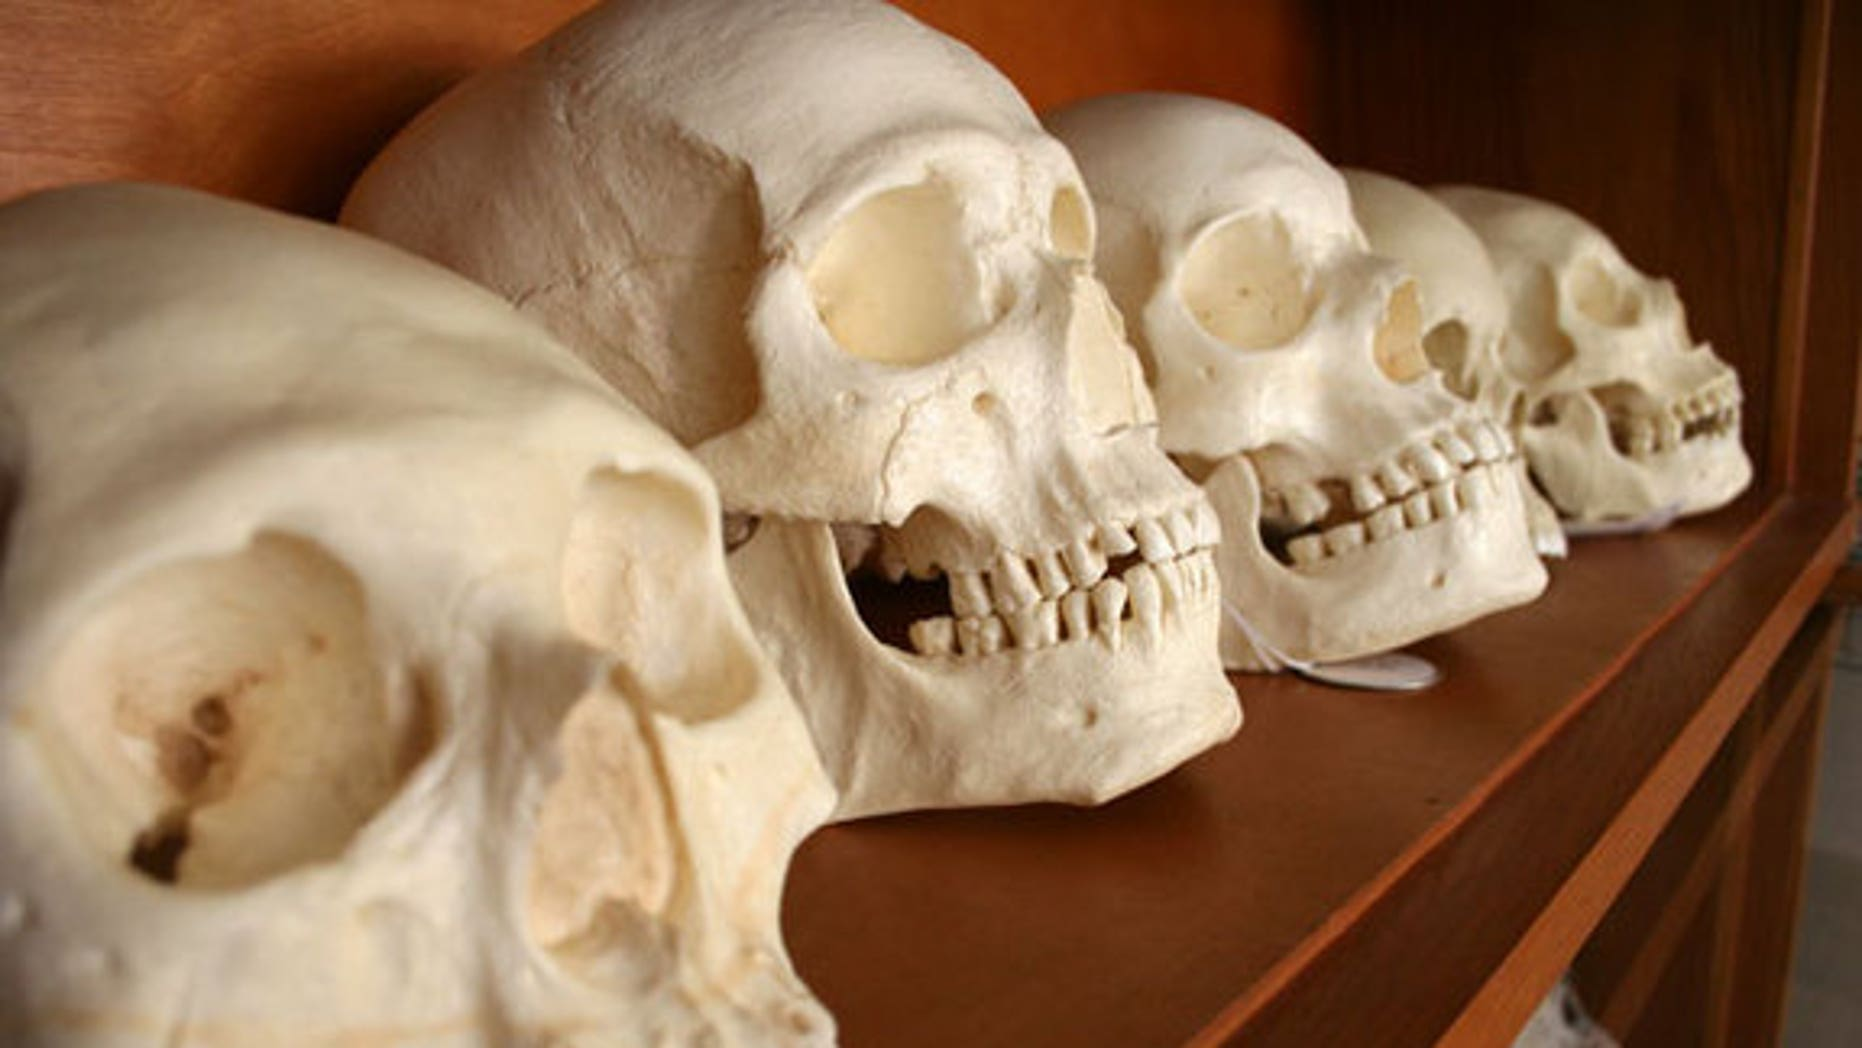 Skulls from a forensic anthropology lab.